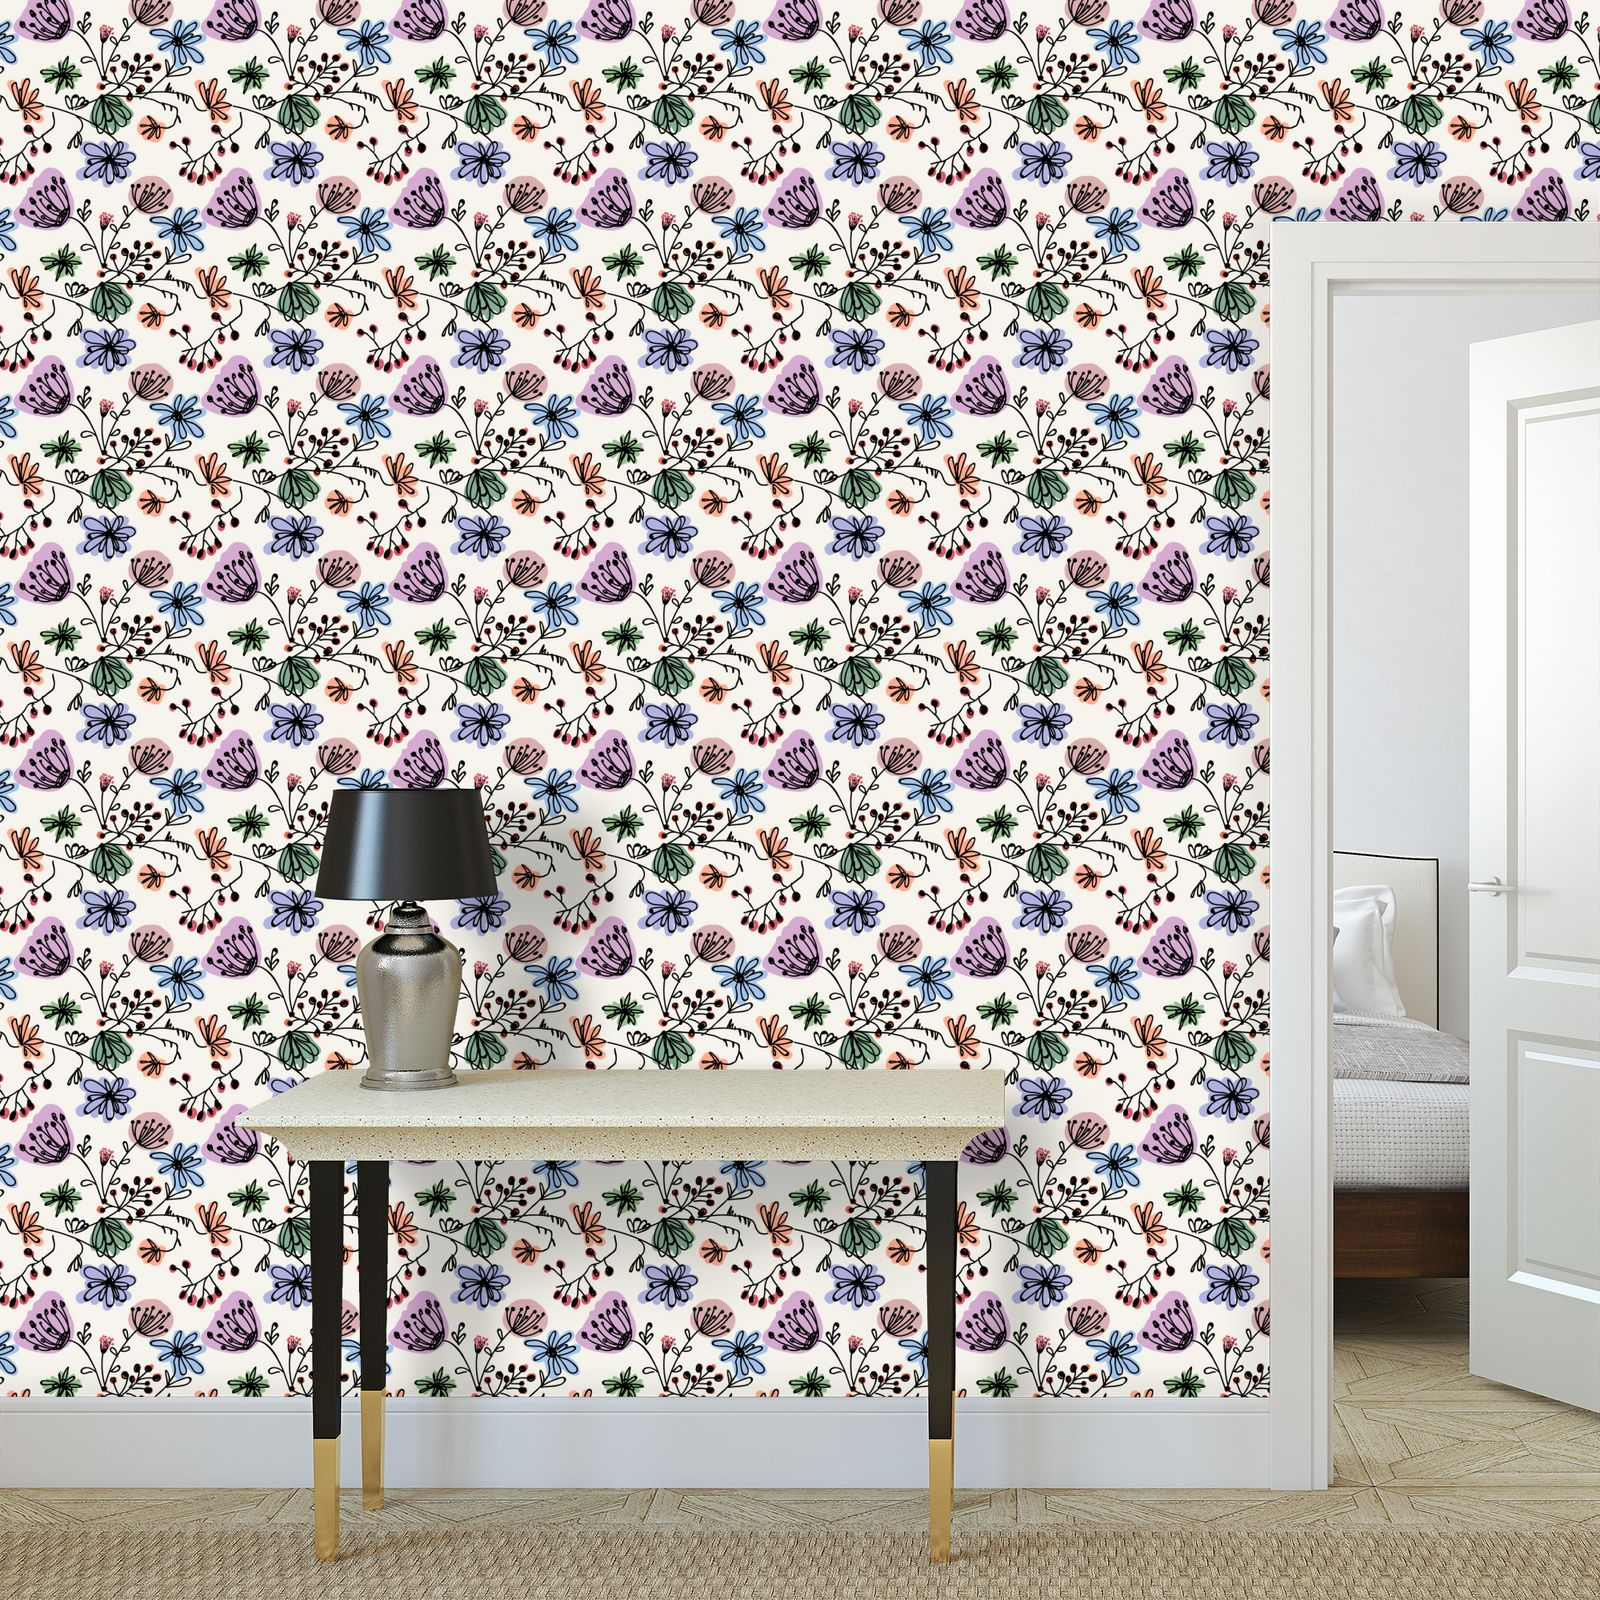 Wild flowers - Wallpaper Rolls - floral, large scale, hand drawing, colored spots, graphical, artistic, botanical, blossom, blooming plants, summer gift - design by Tiana Lofd